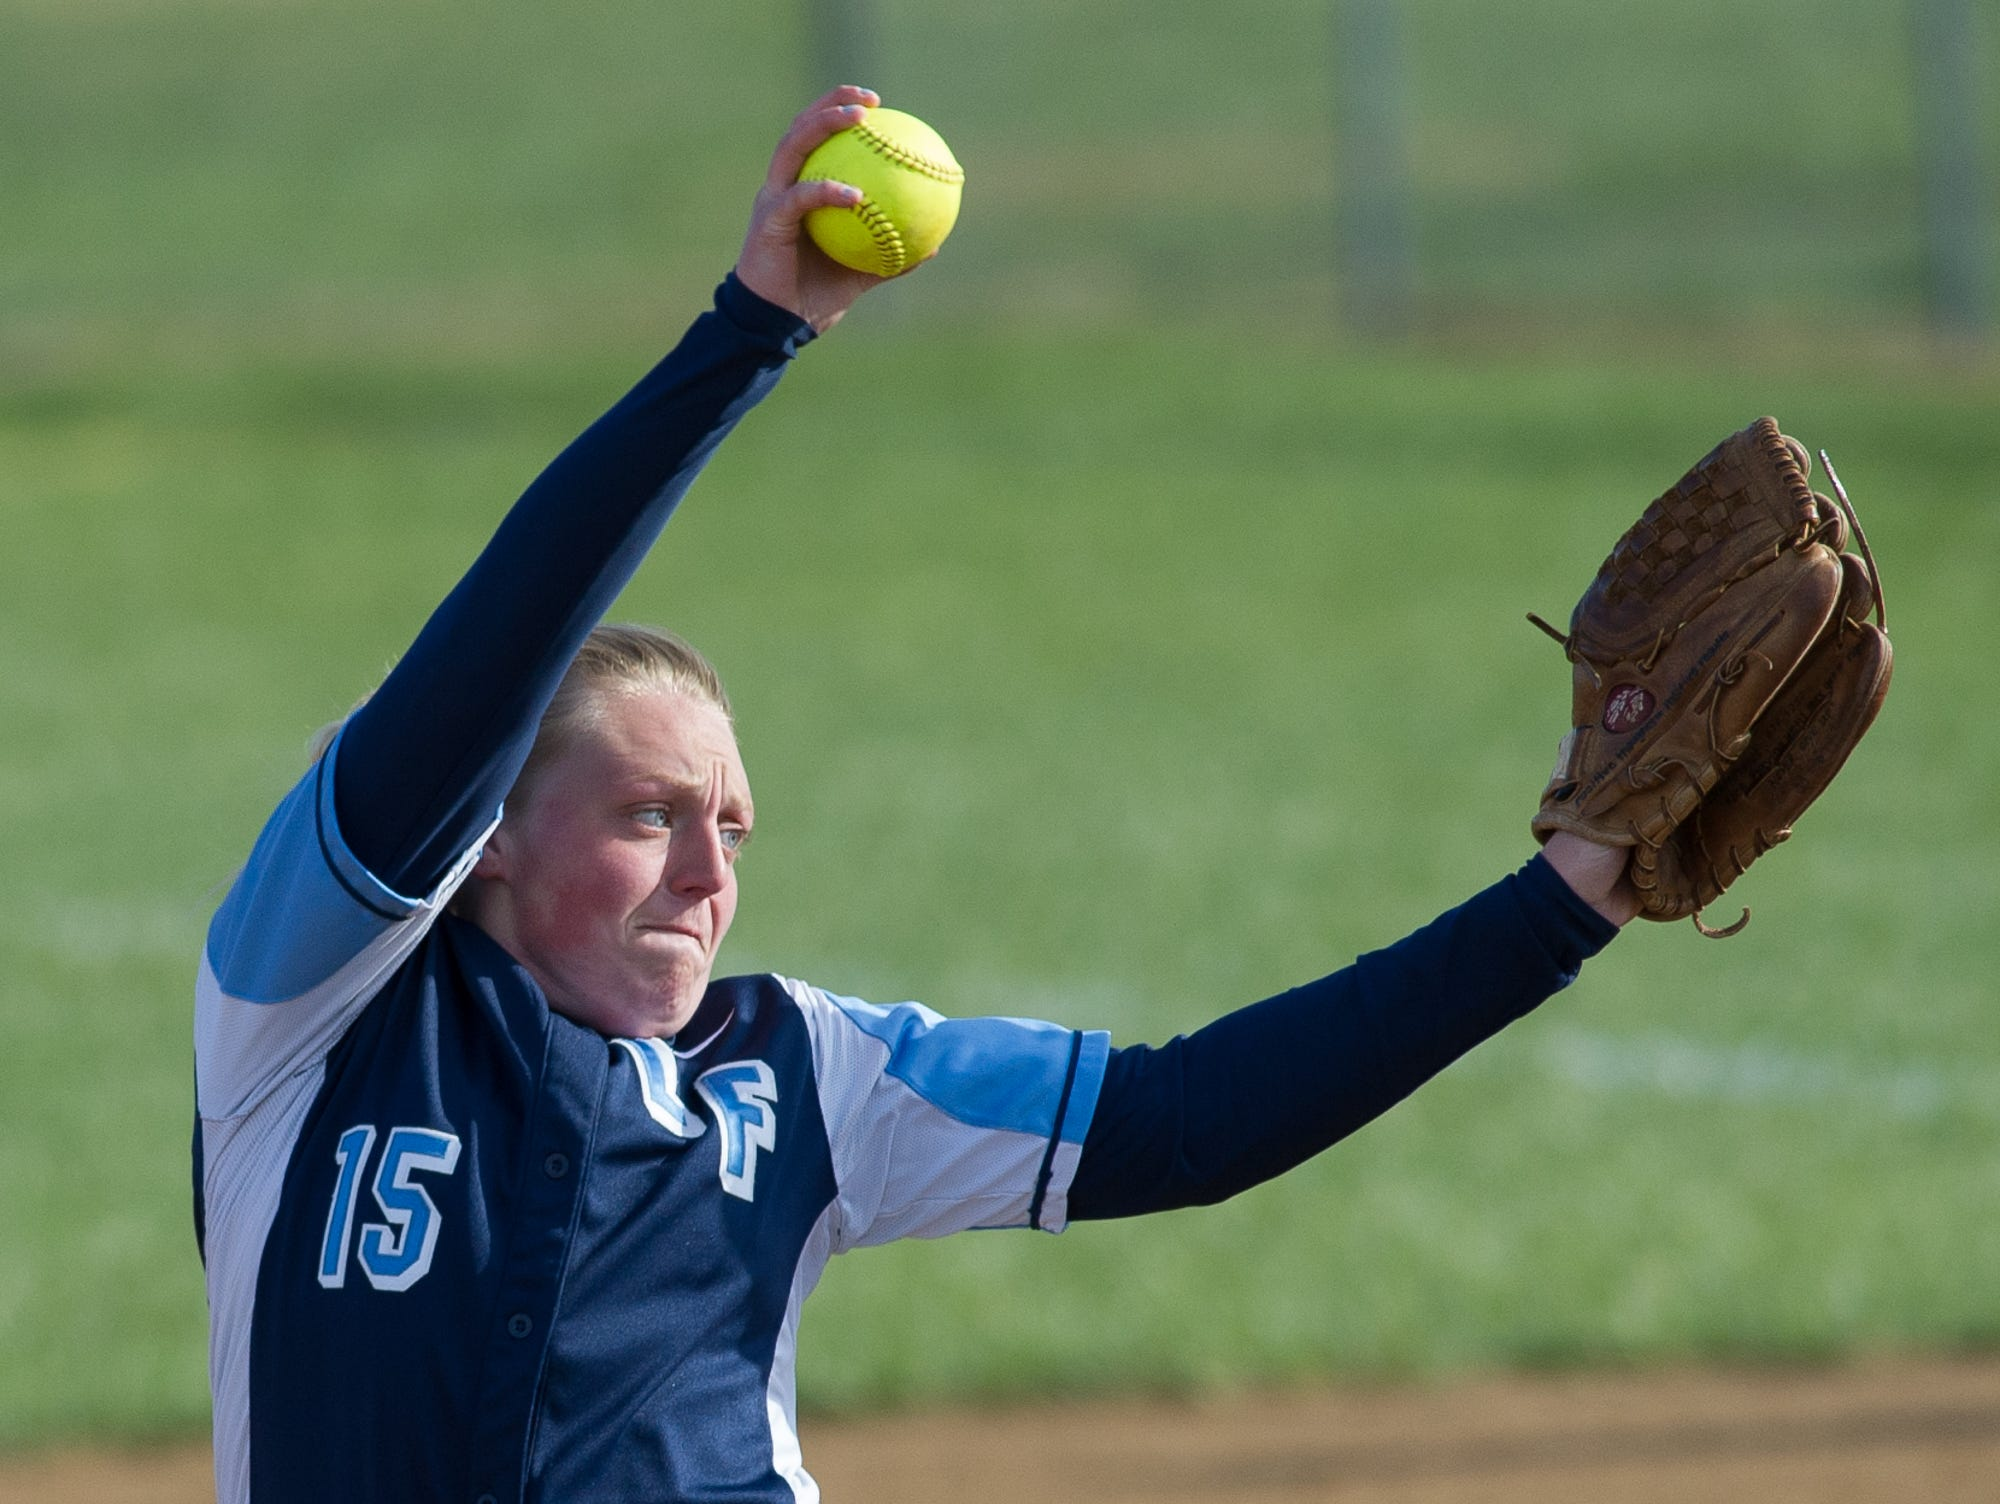 Lake Forest's pitcher Kerrigan Simpson (15) sends a pitch in their game against Red Lion.